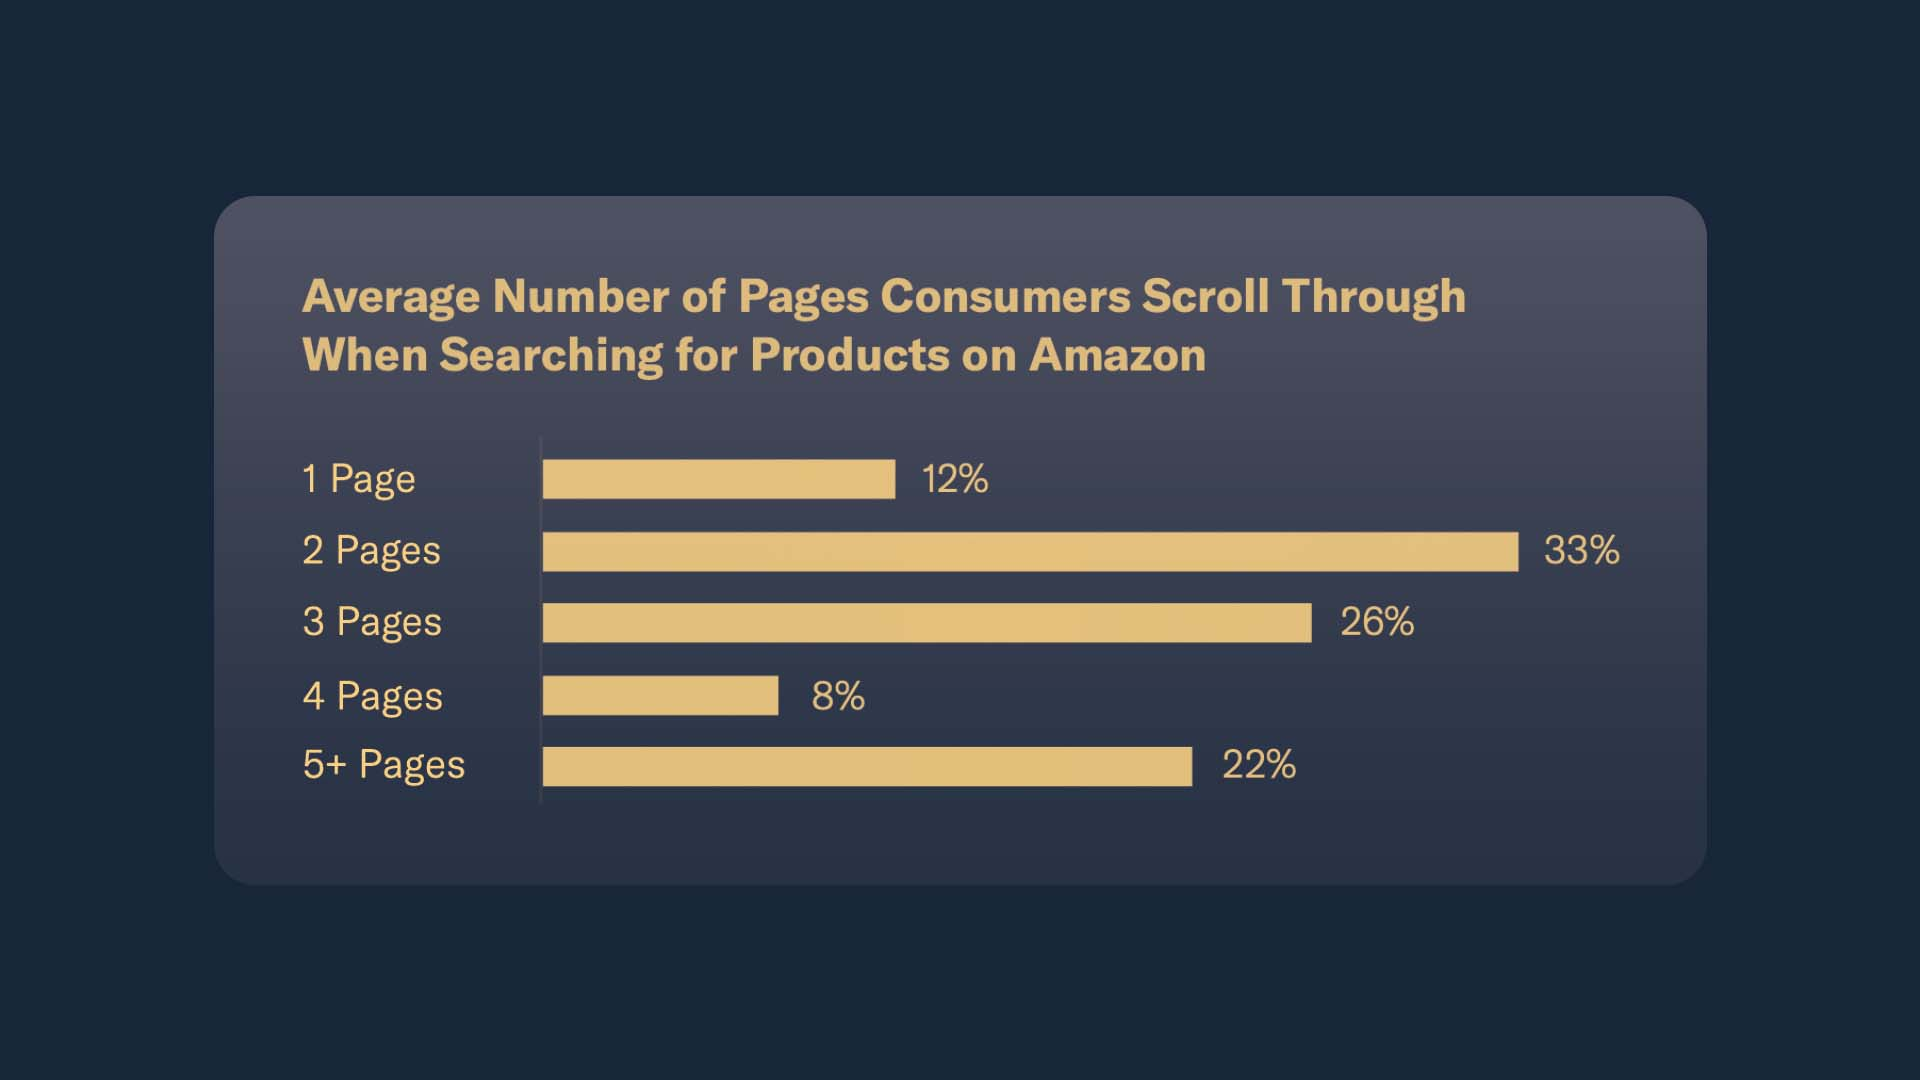 Bar graph comparing the average number of pages shoppers scroll through before picking their item. 1 page - 12%. 2 pages - 33%. 3 Pages - 26%. 4 pages - 8%. 5+ pages - 22%.